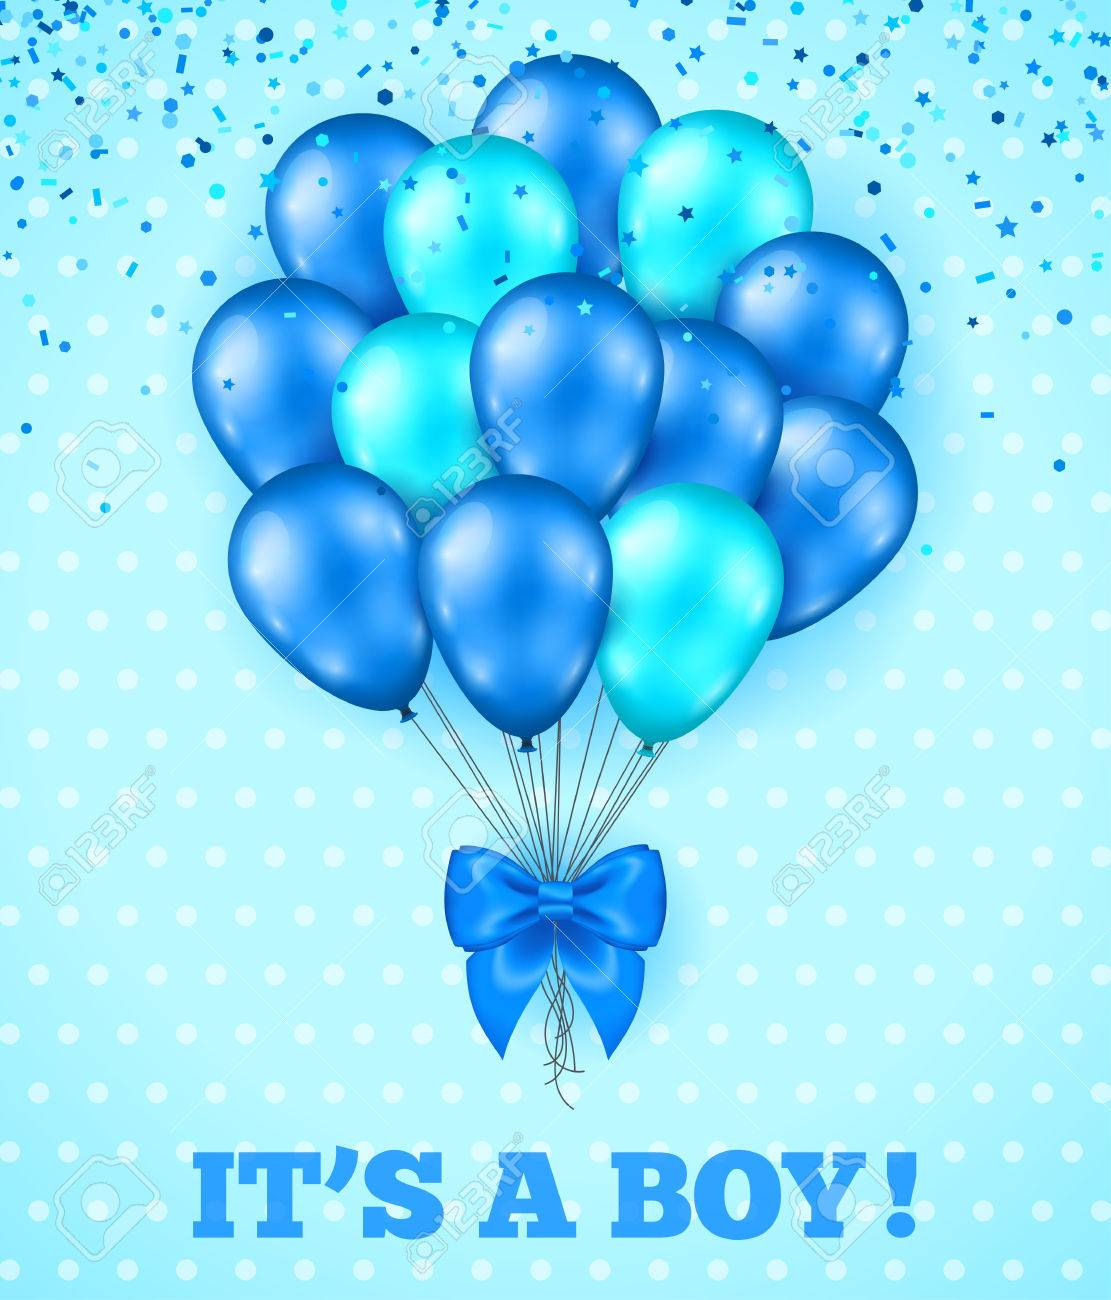 Its A Boy Baby Shower Background Vector Illustration Blue Cute Greeting Card With